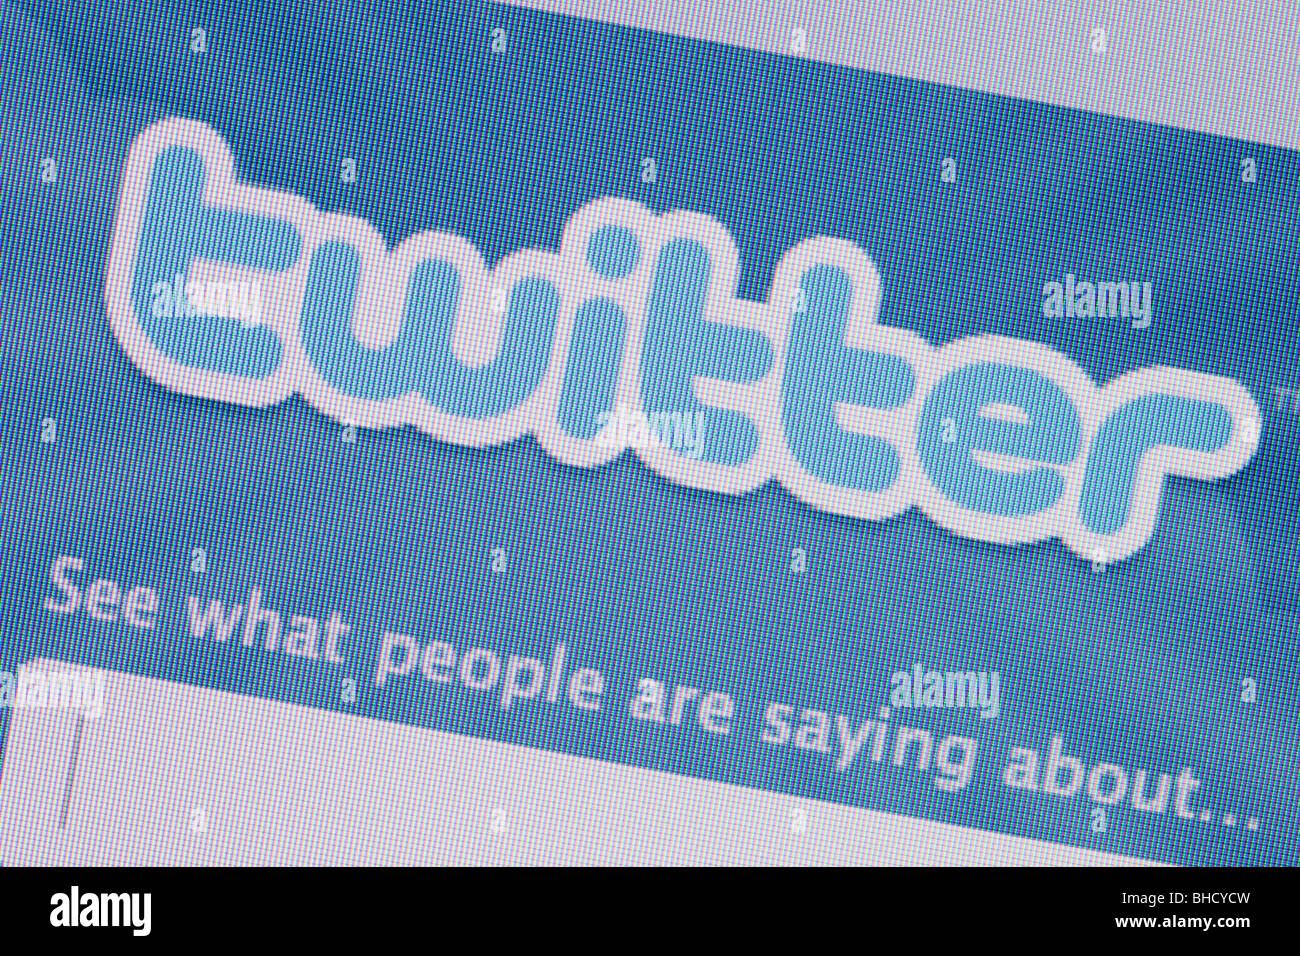 Close-up of a screenshot of Twitter social networking website logo - Stock Image